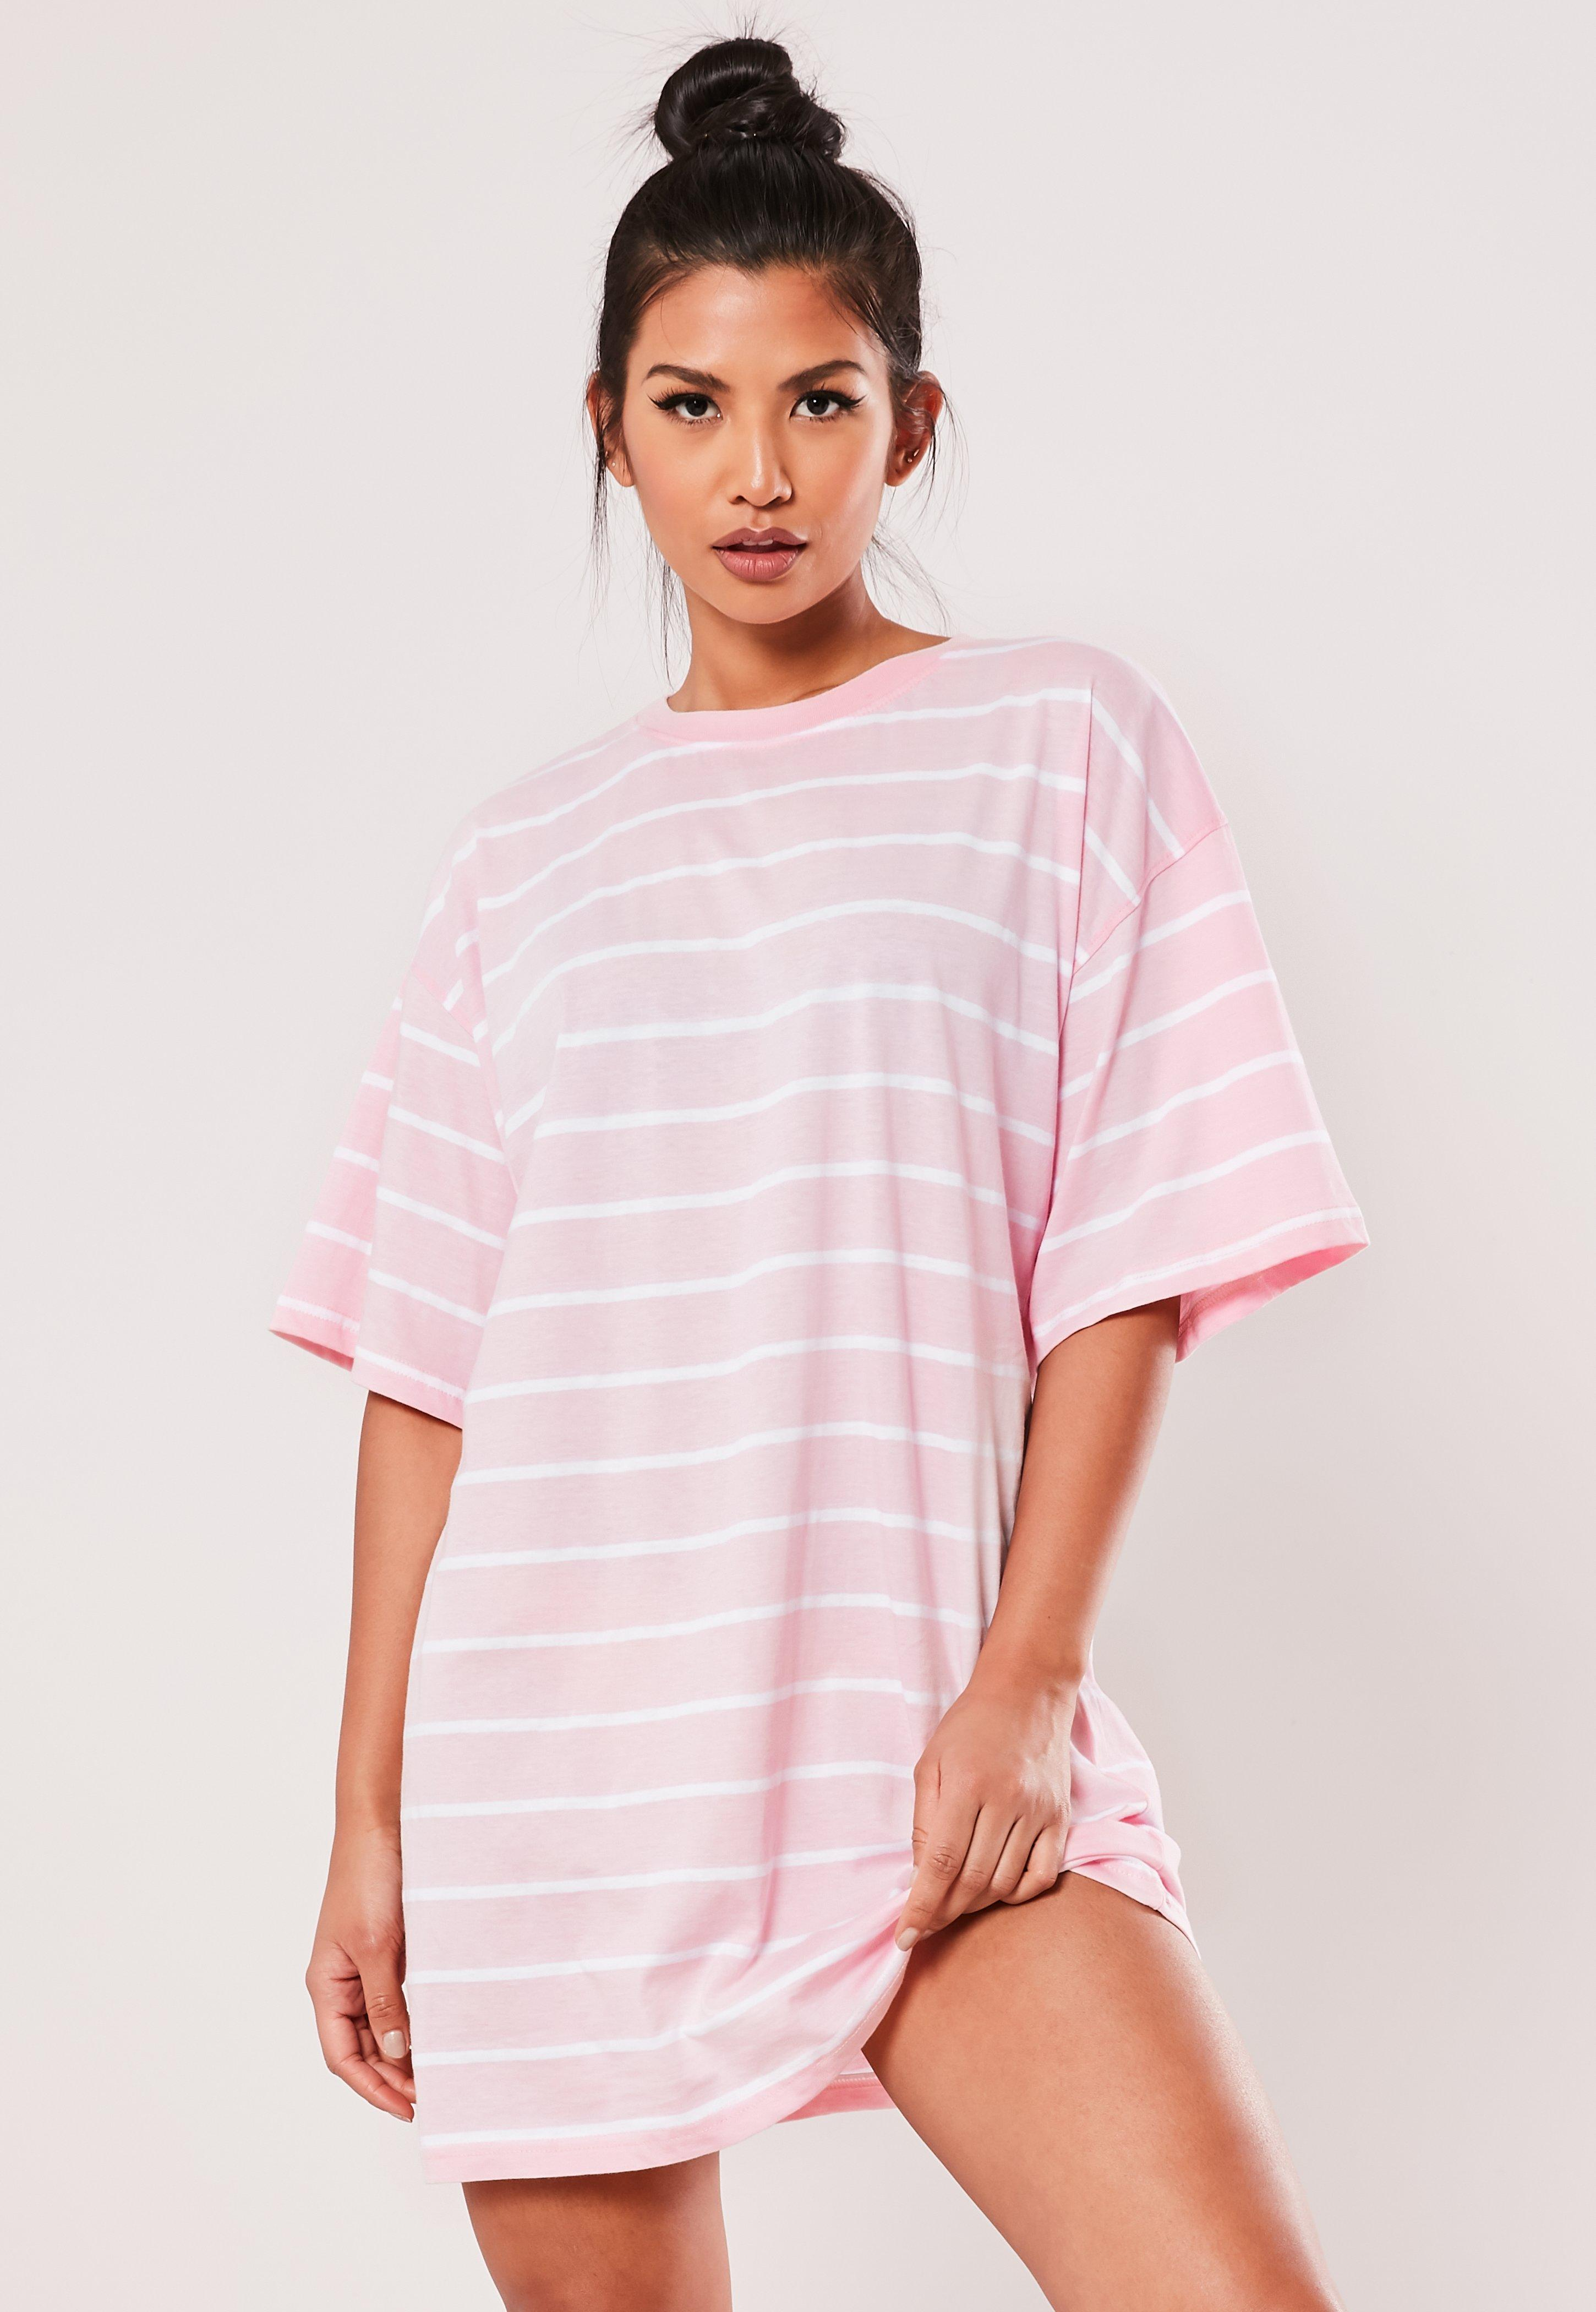 da74fbd6f0157 T Shirt Dresses | Printed & Slogan T-Shirt Dresses - Missguided